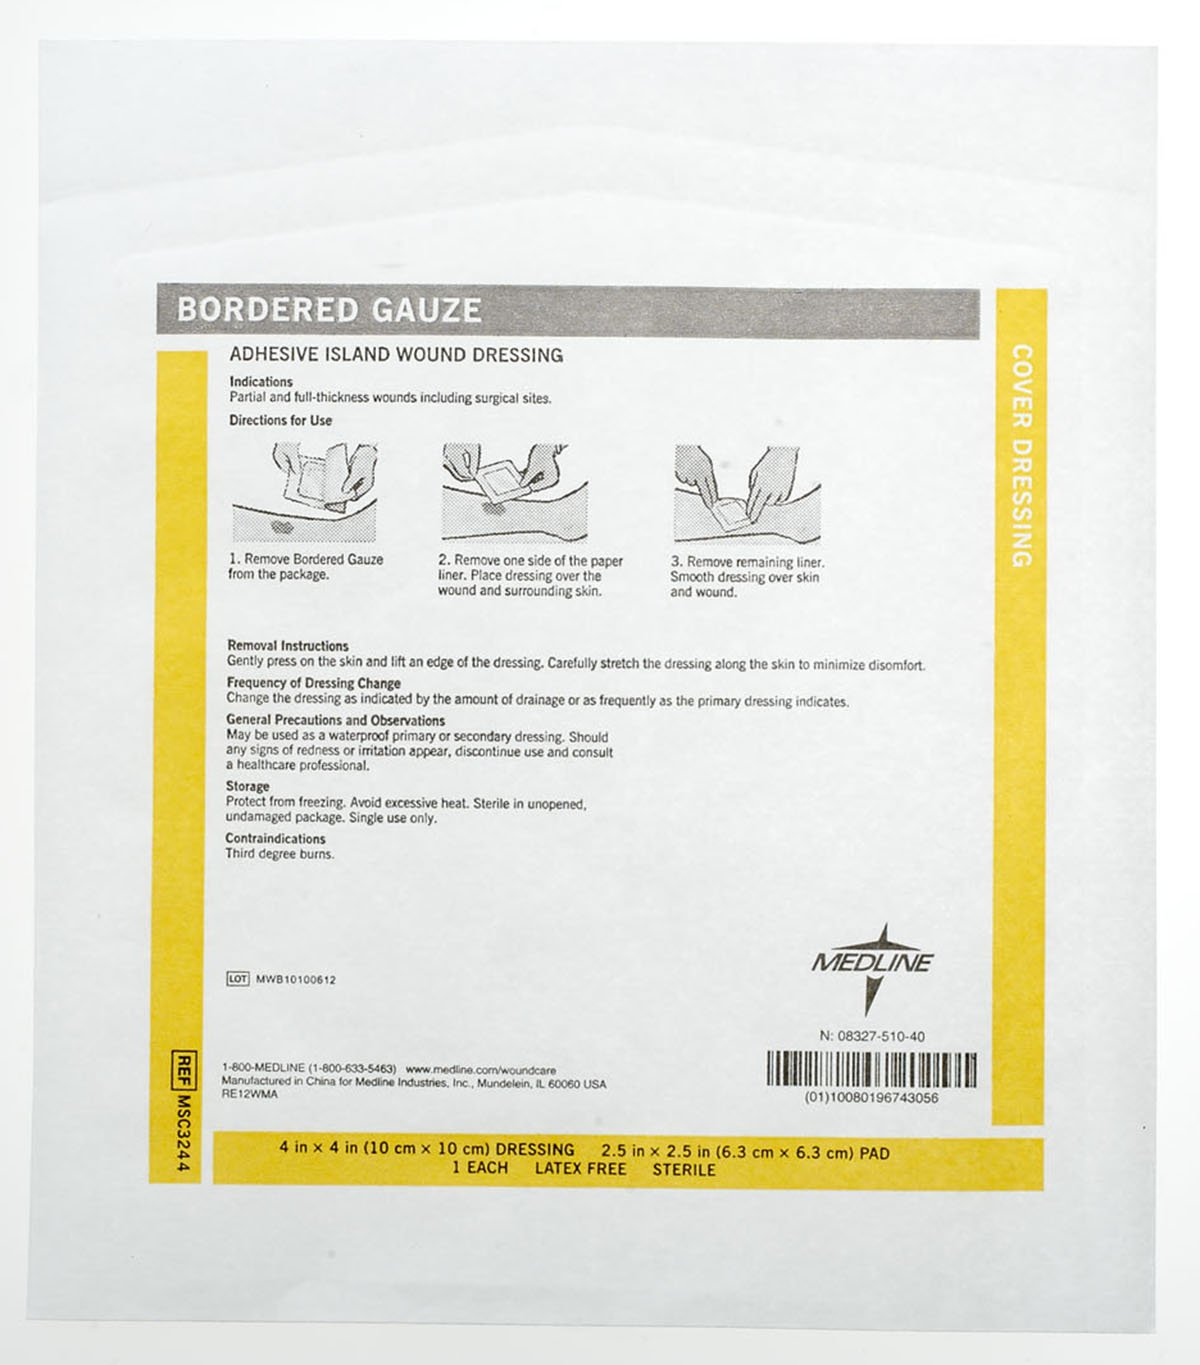 Medline Gauze Border Pad Sterile, 150 Count by Medline